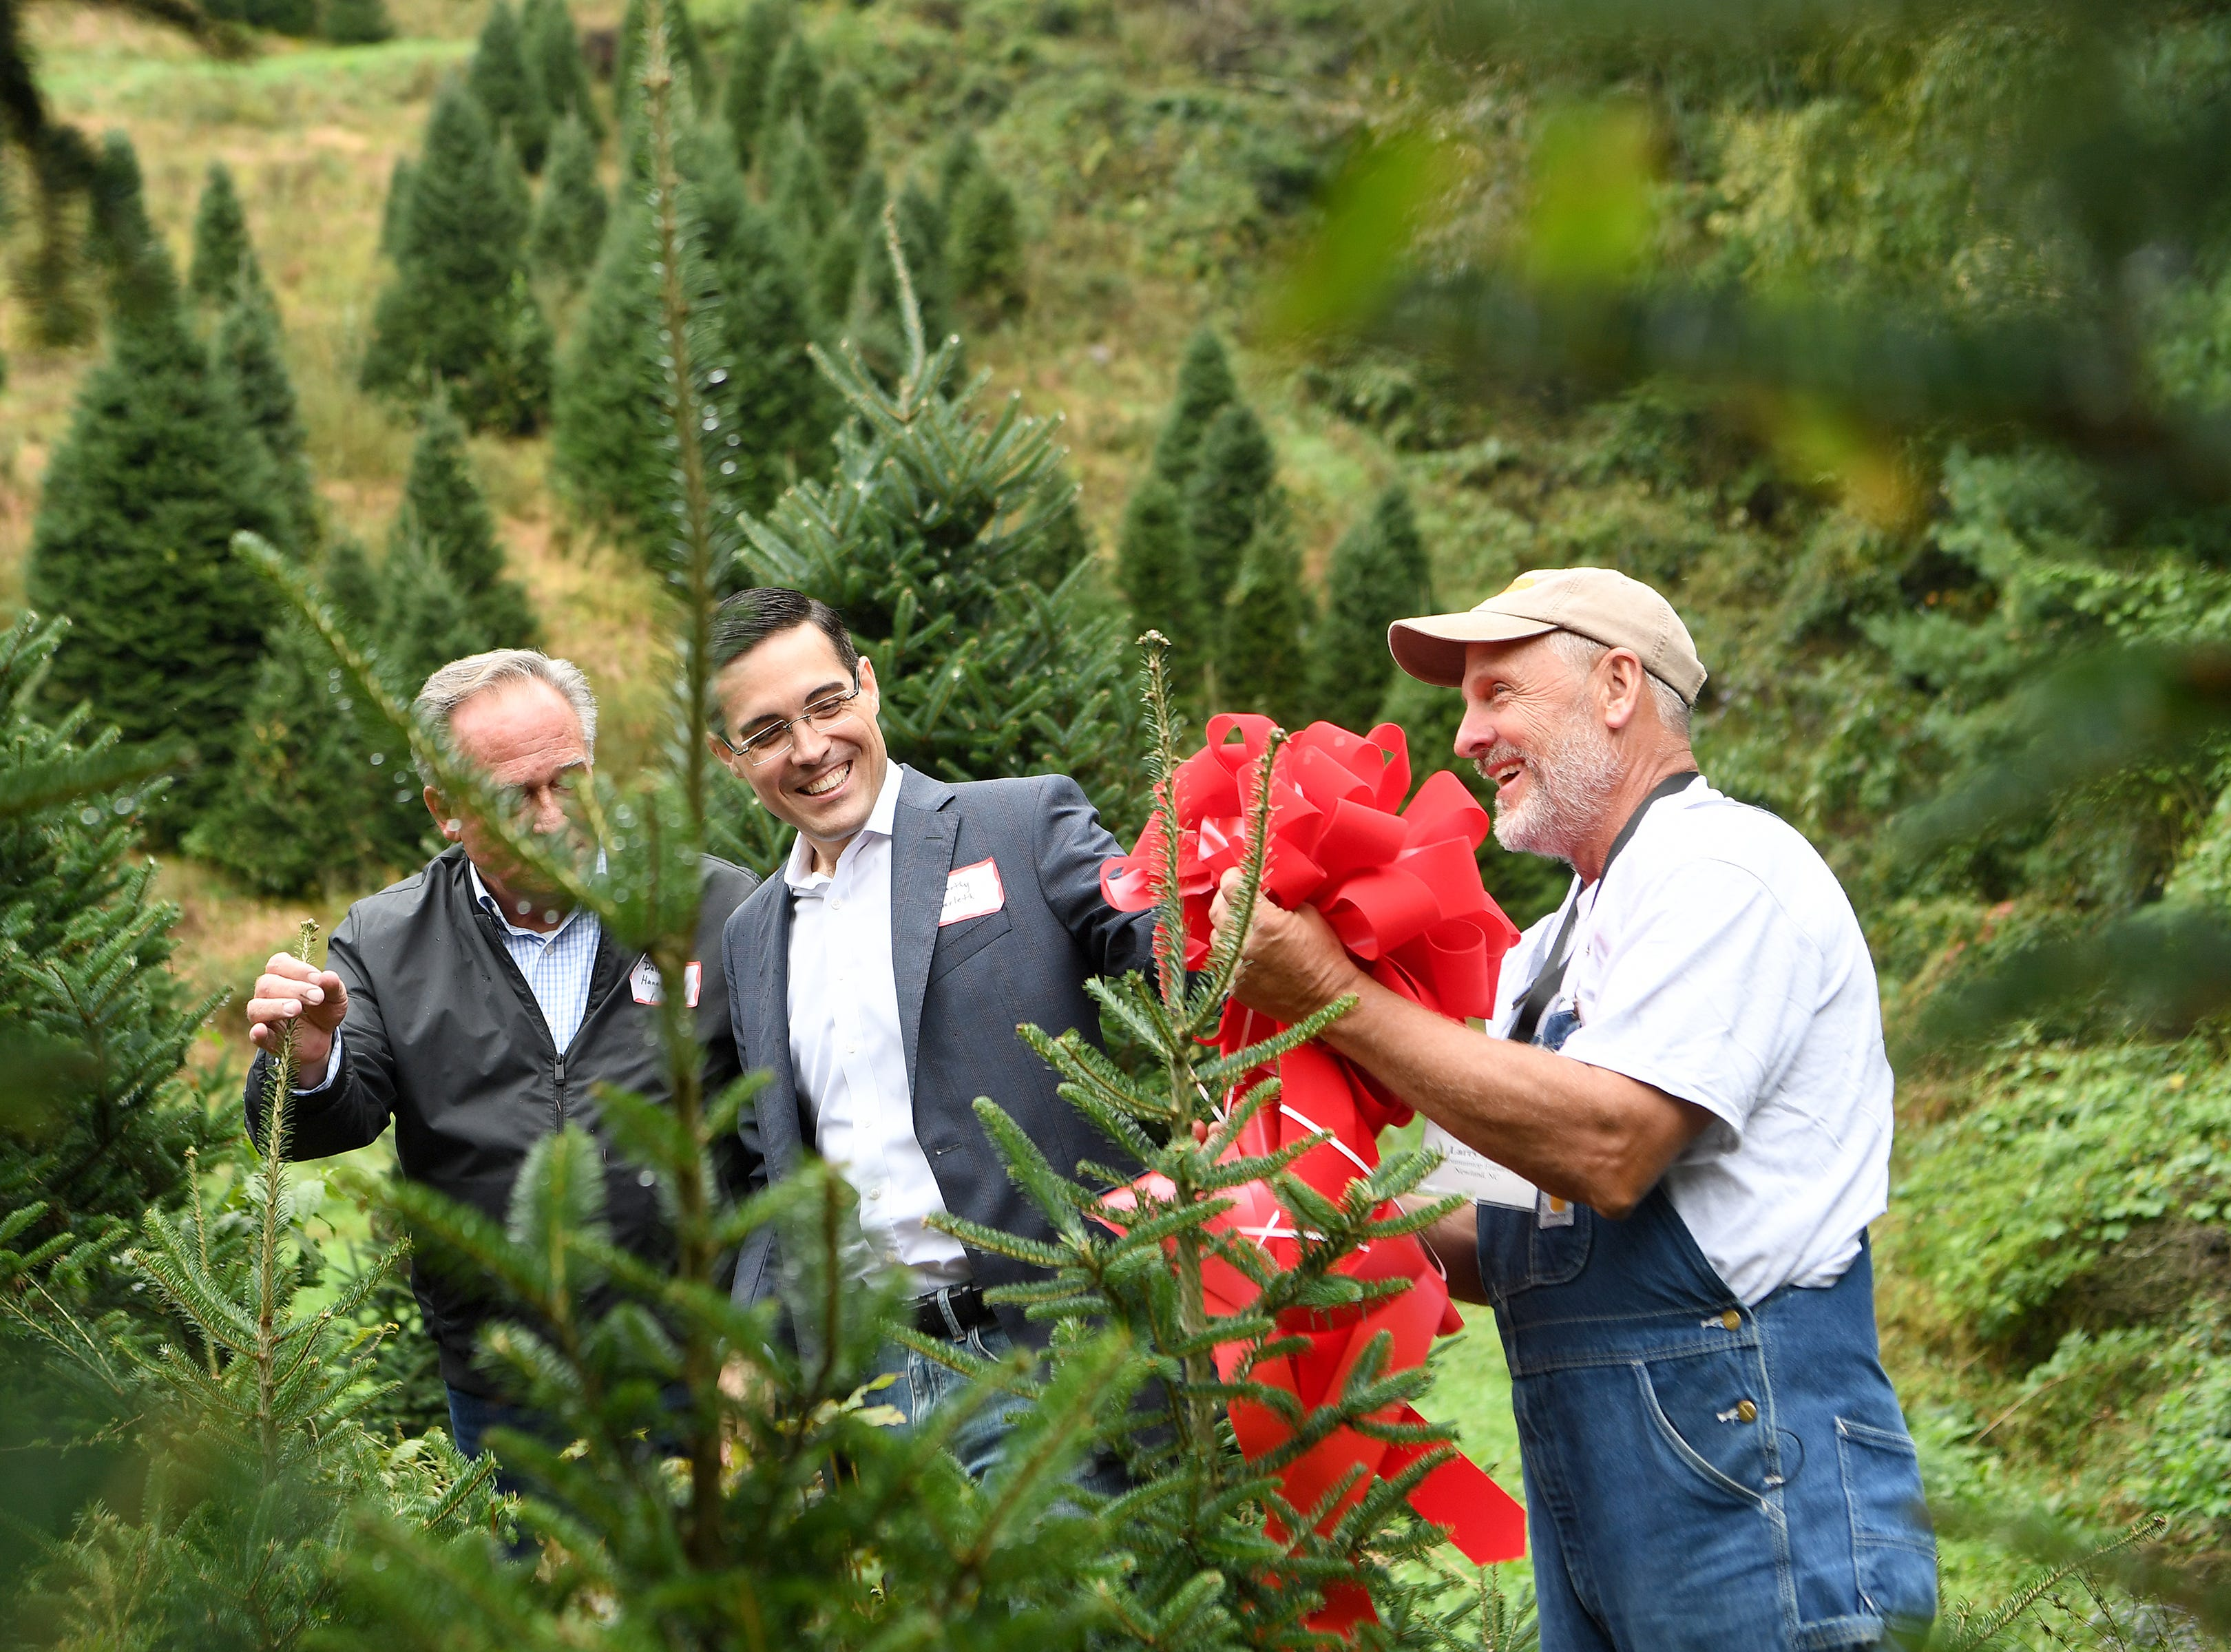 White House superintendent of grounds Dale Haney, left, and chief usher Timothy Harleth, center, decide on which of 